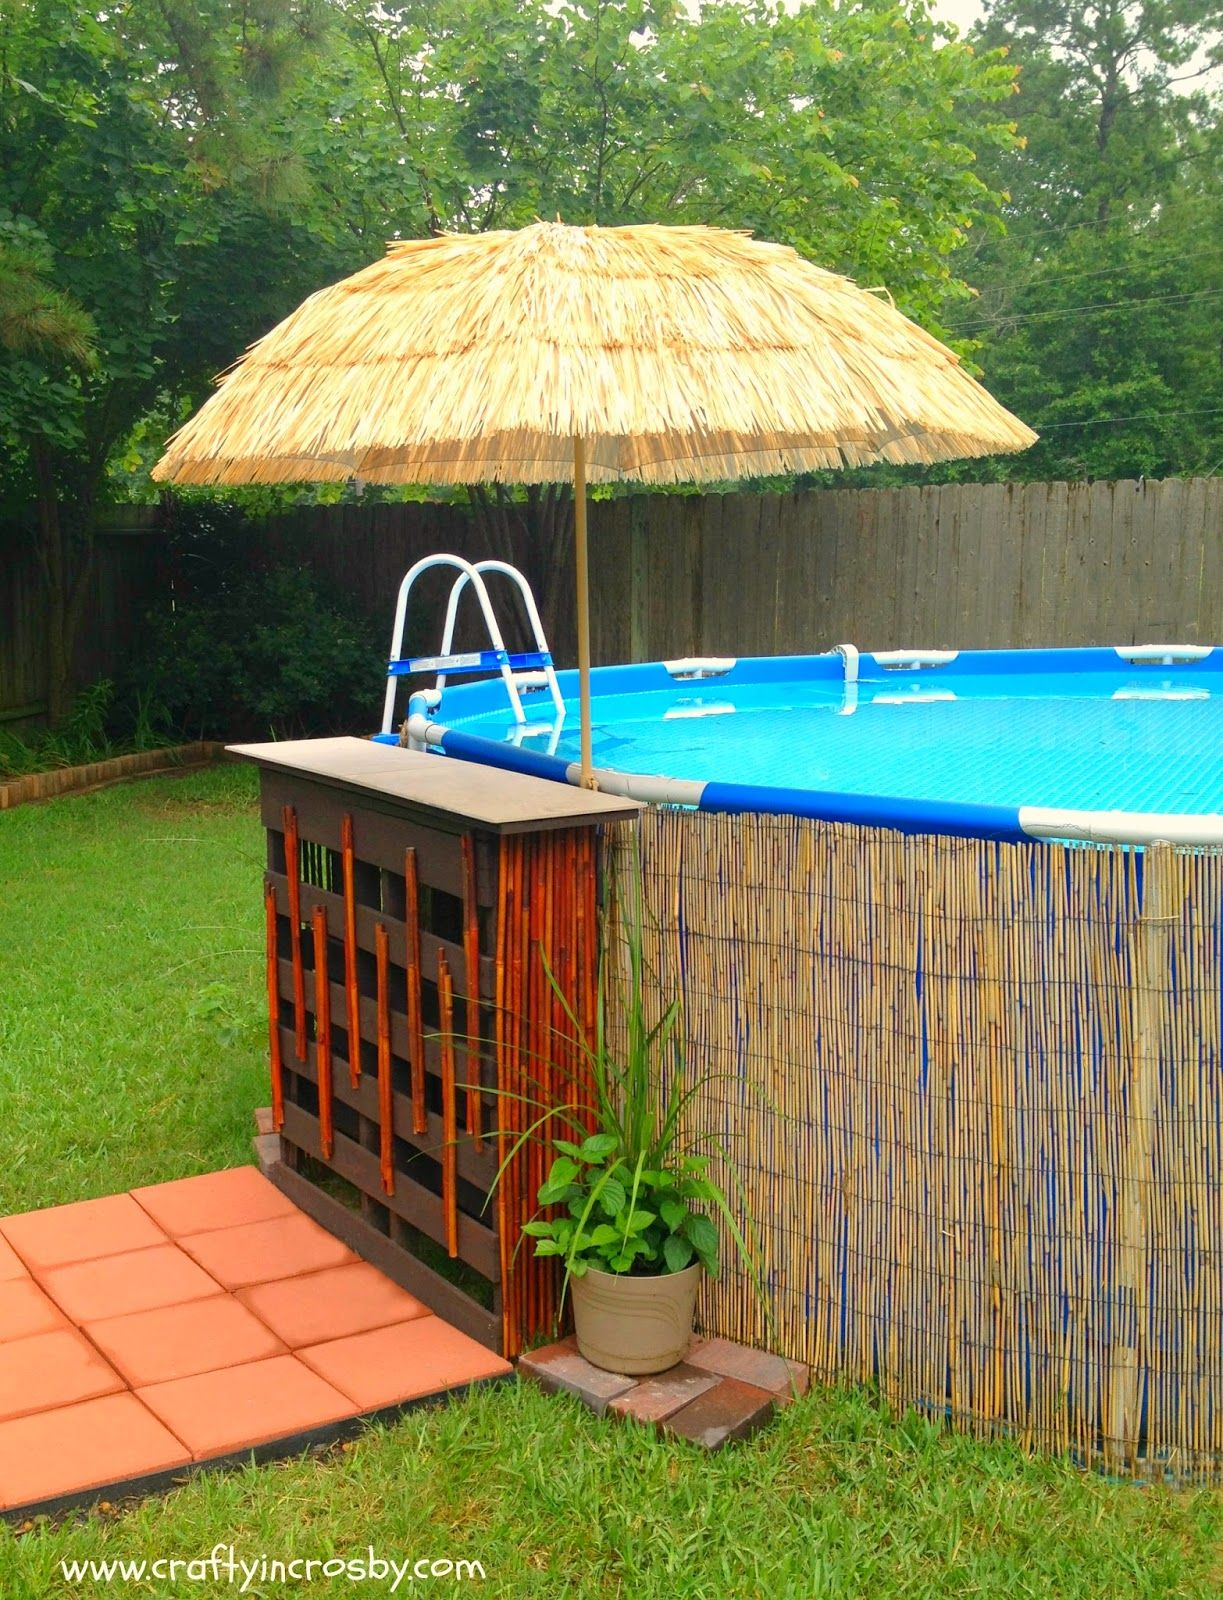 Pallet Bar Above Ground Pool Decor Above Ground Pool Poolside Bar within Backyard Pool Decor